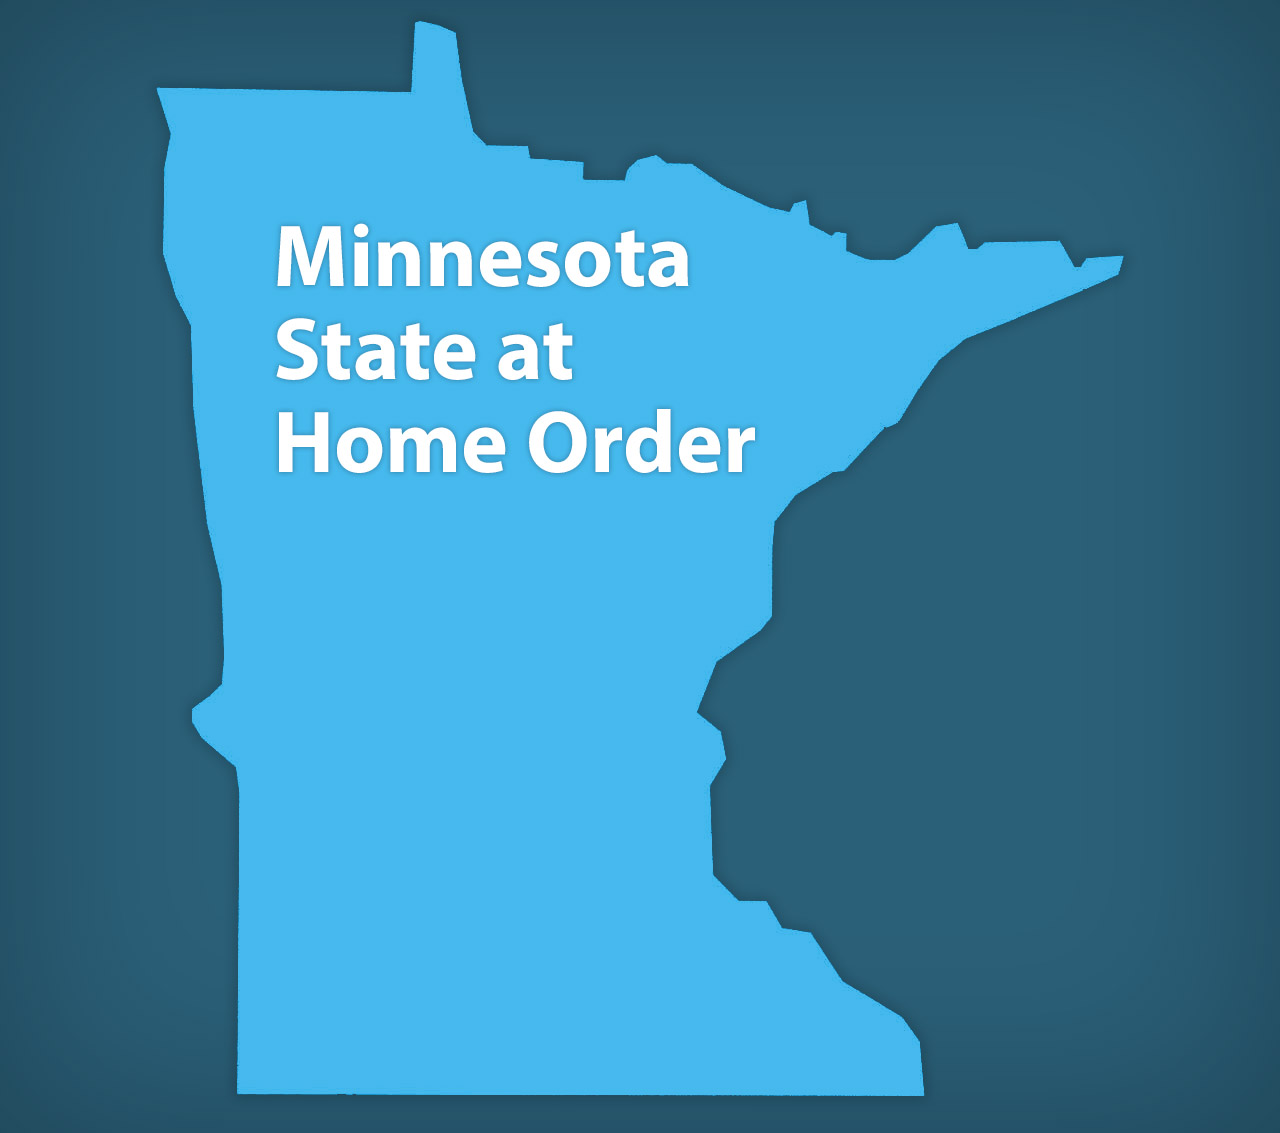 minnesota state at home order